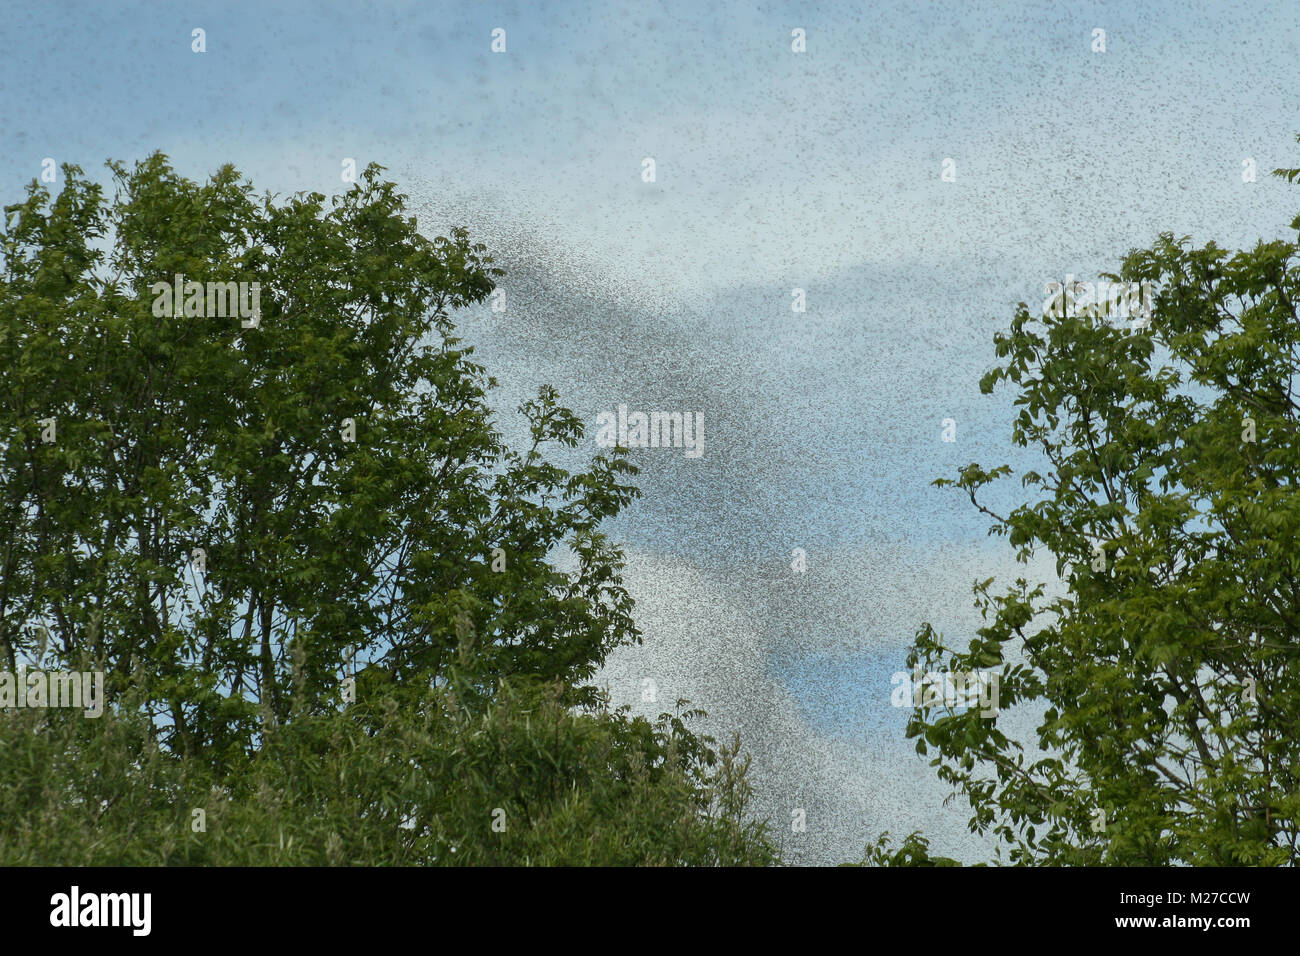 A hatch of mayflies in the sky. - Stock Image